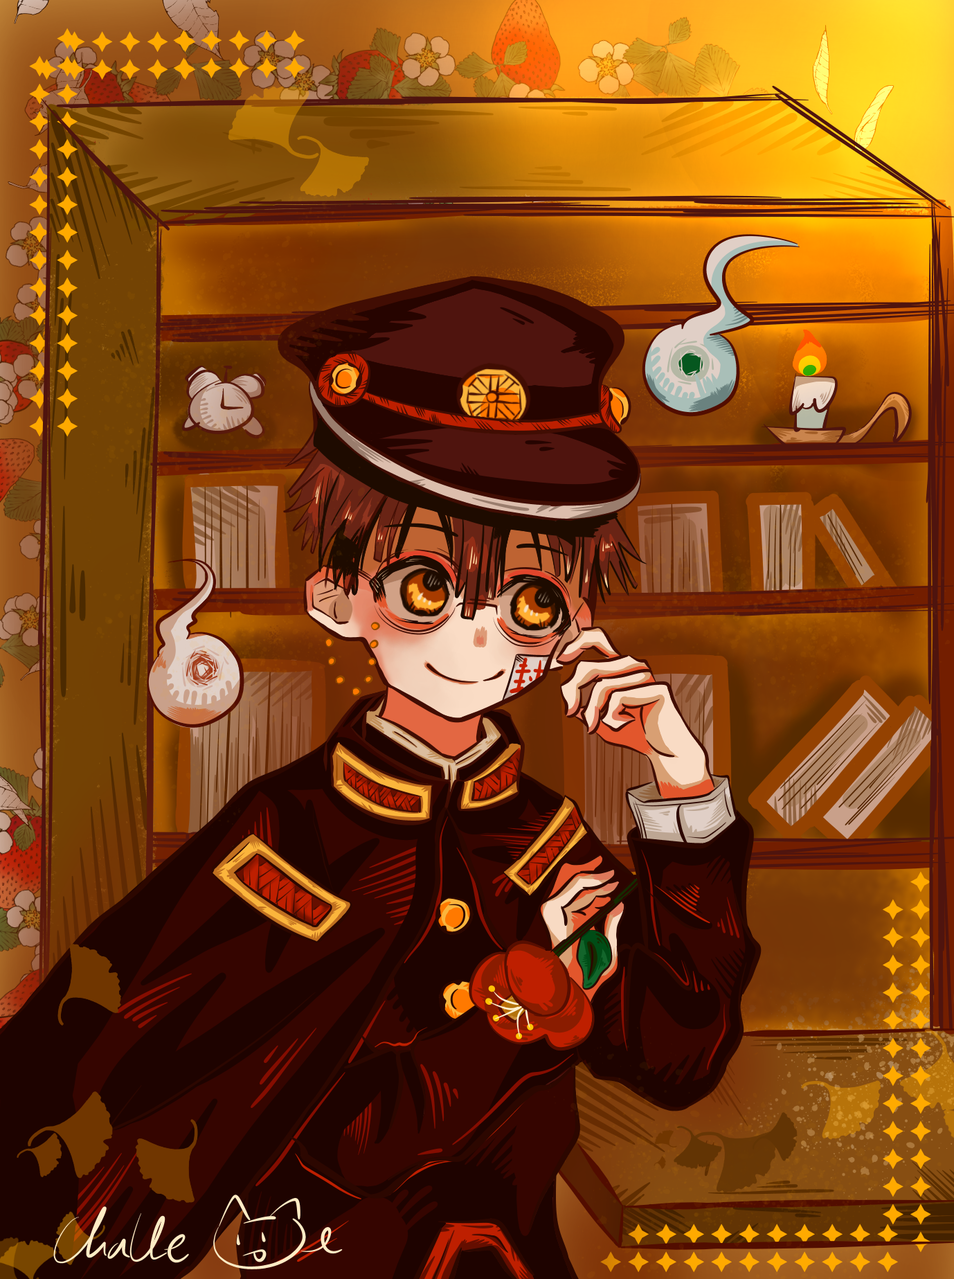 waiting--- Illust of challe medibangpaint Toilet-boundHanako-kun 花子君 同人